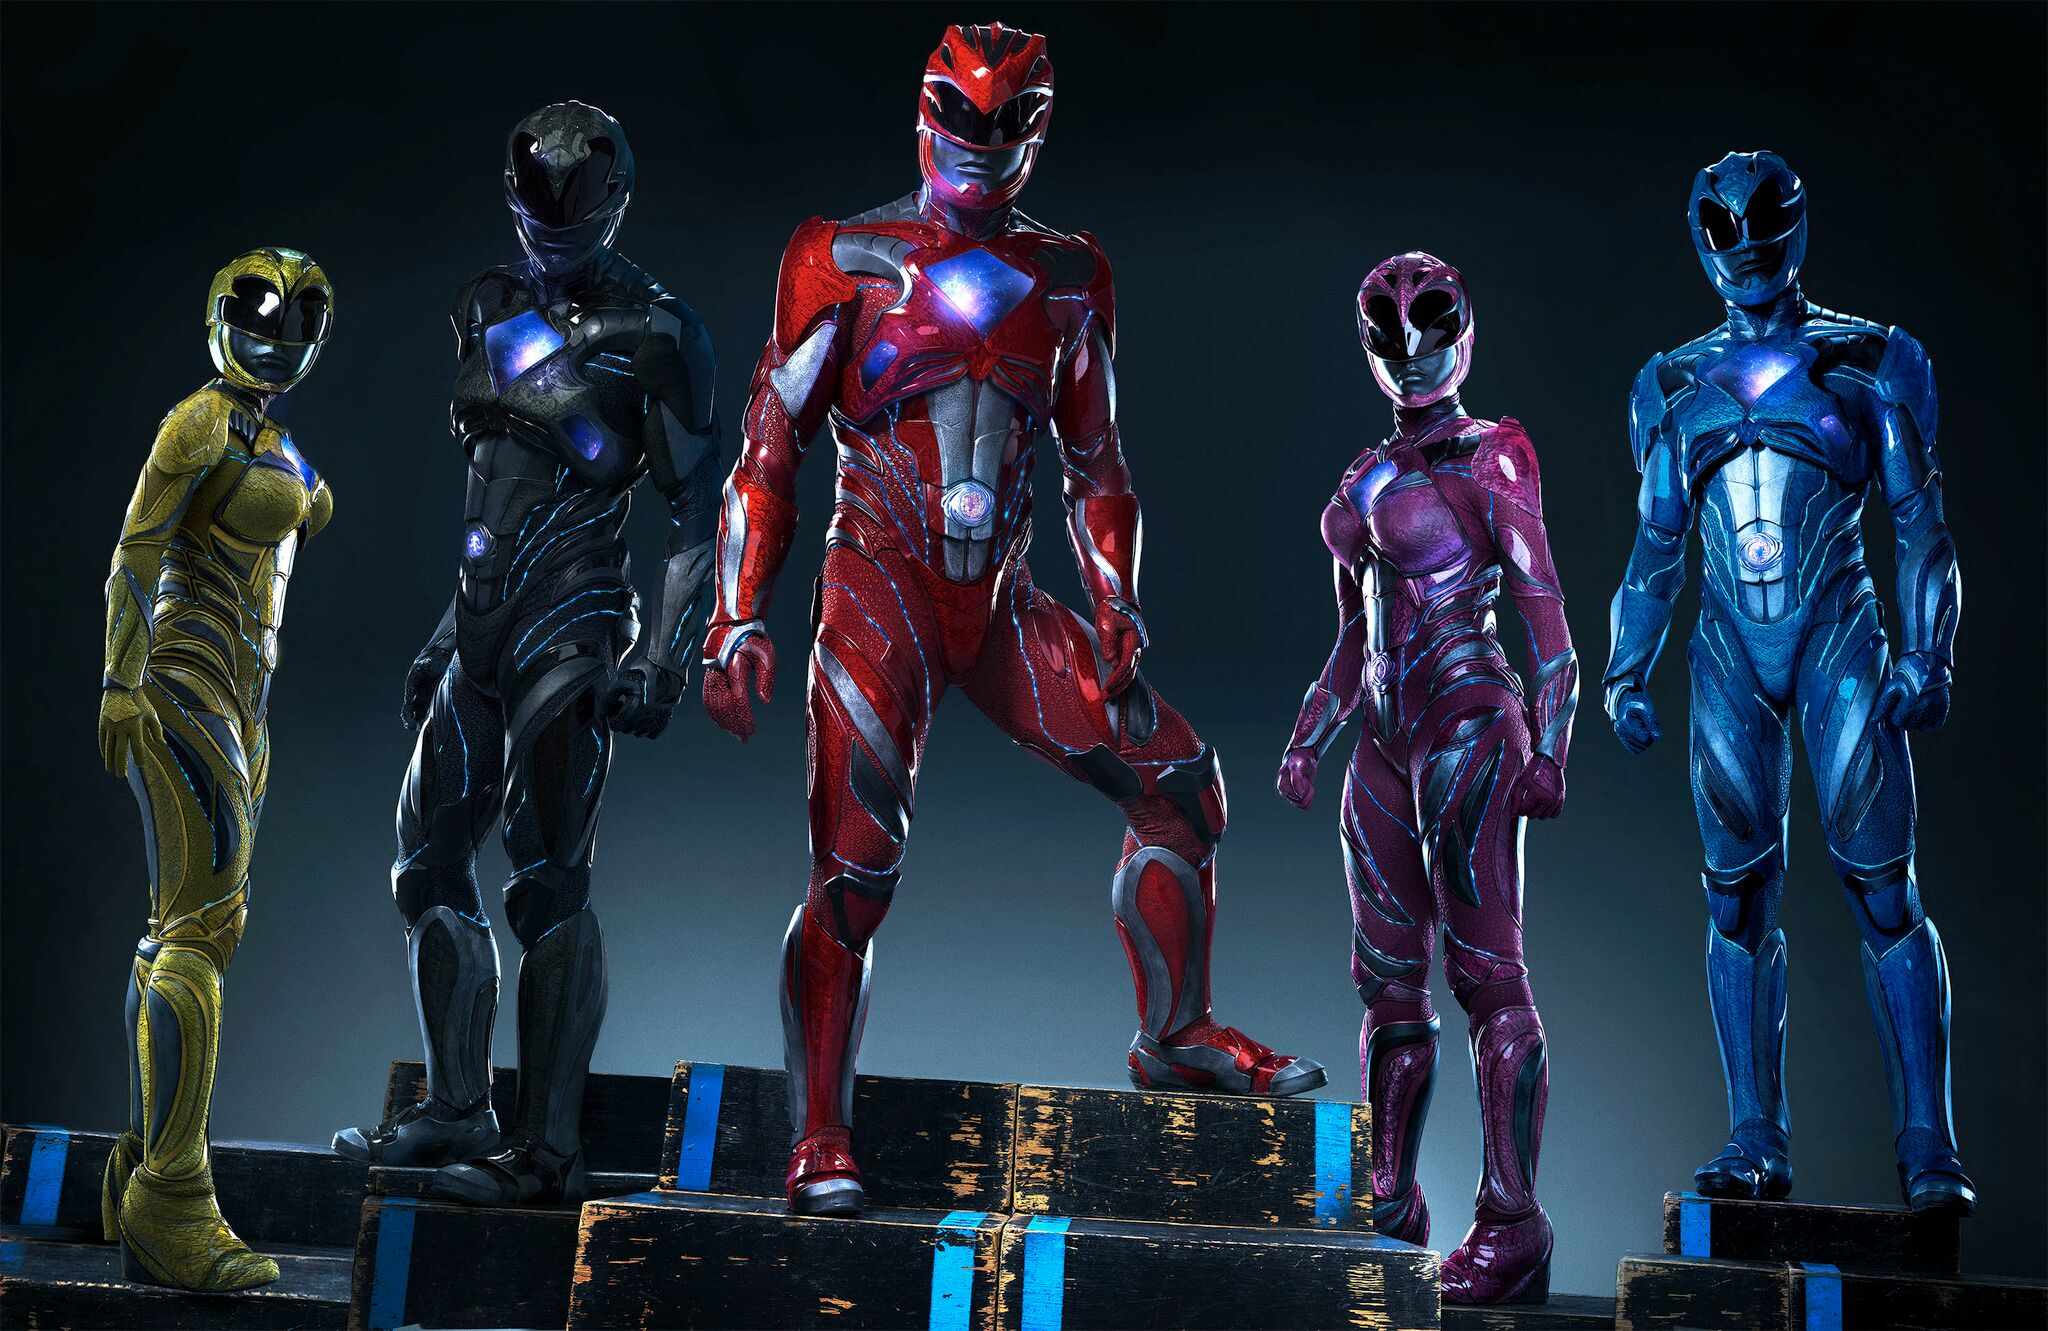 If you havent seen the 2017 Power Rangers reboot, we recommend coming back after to avoid spoilers!